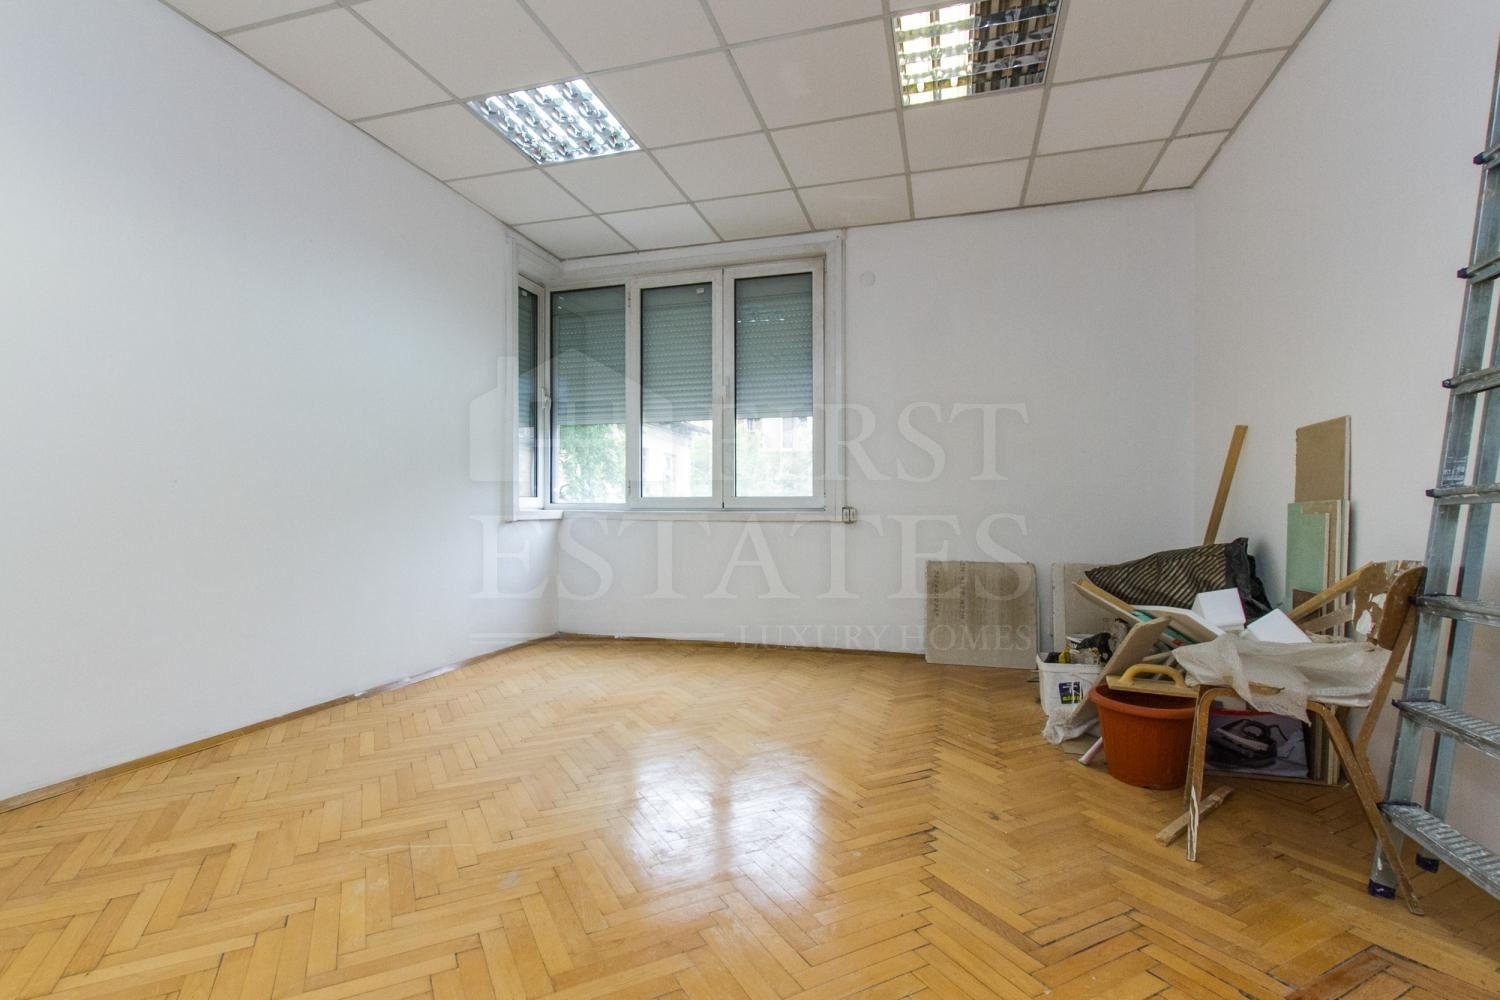 140 m² office for rent